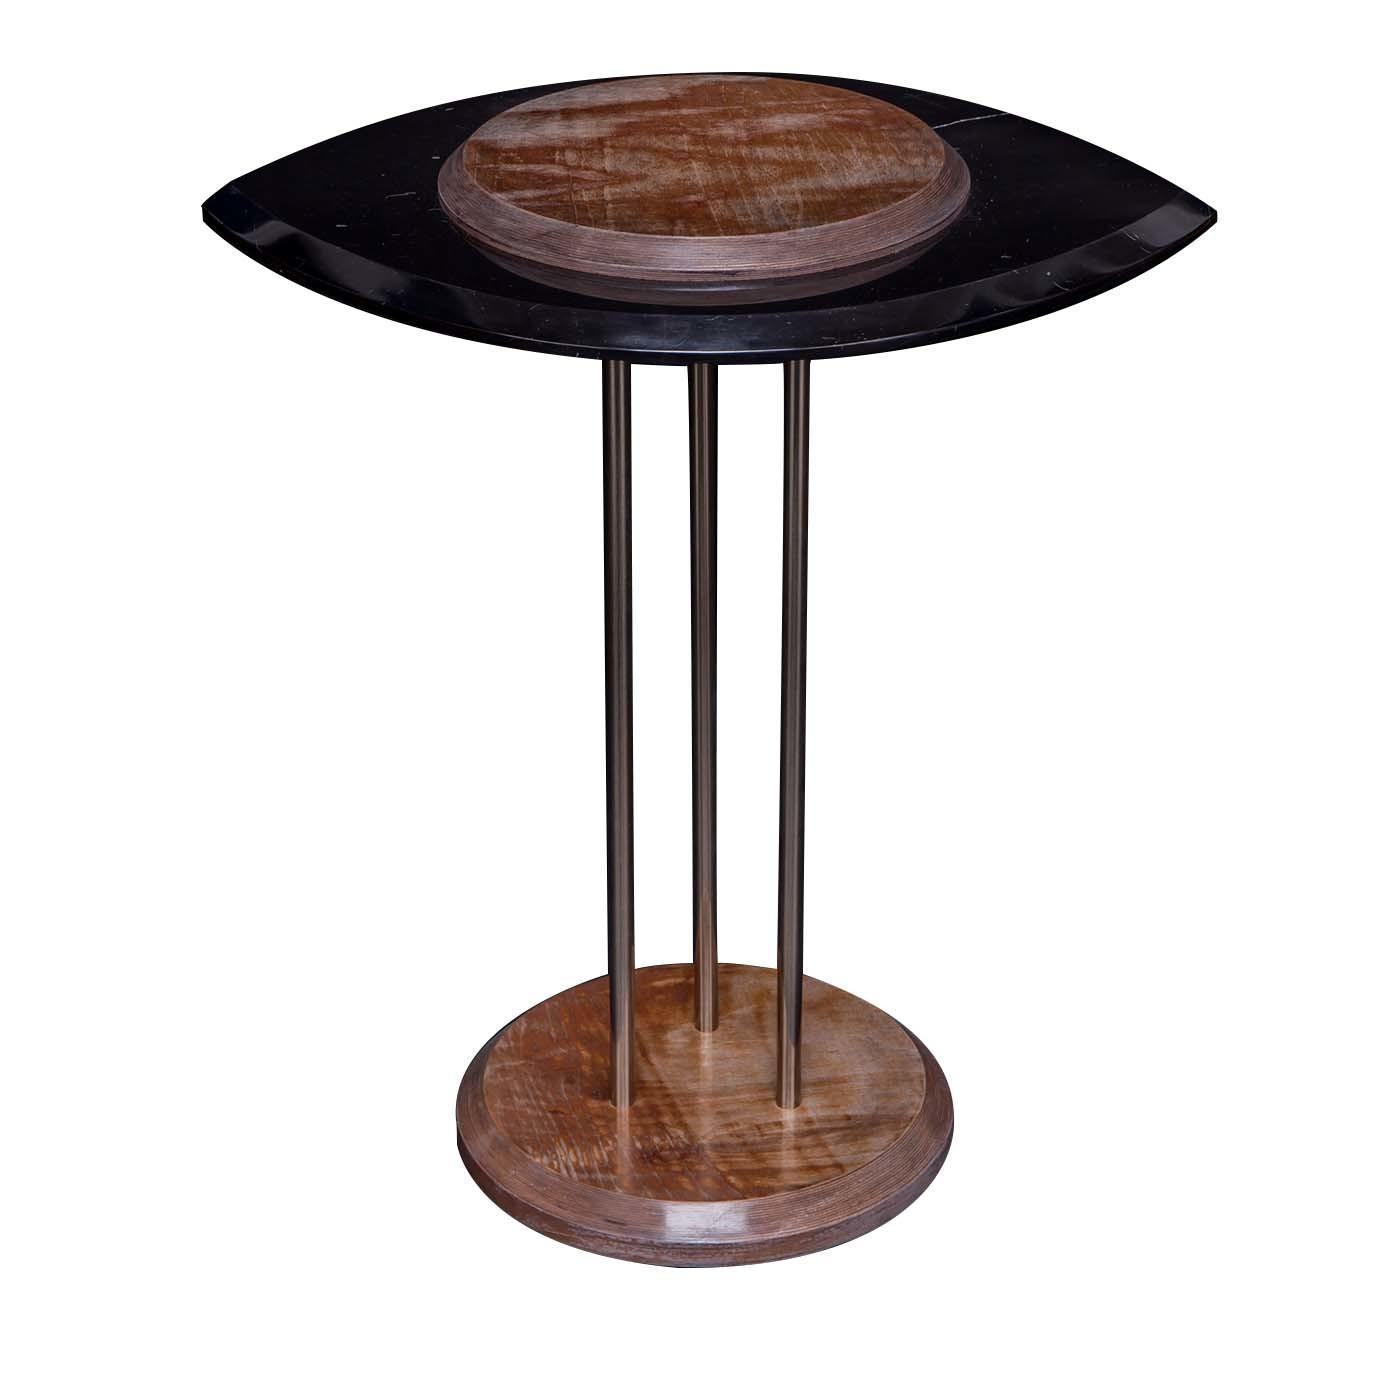 antique and vintage side tables for master red round accent table pub style set dining room mirrored coffee acrylic nesting small trestle legs furniture choice cherry egg chair